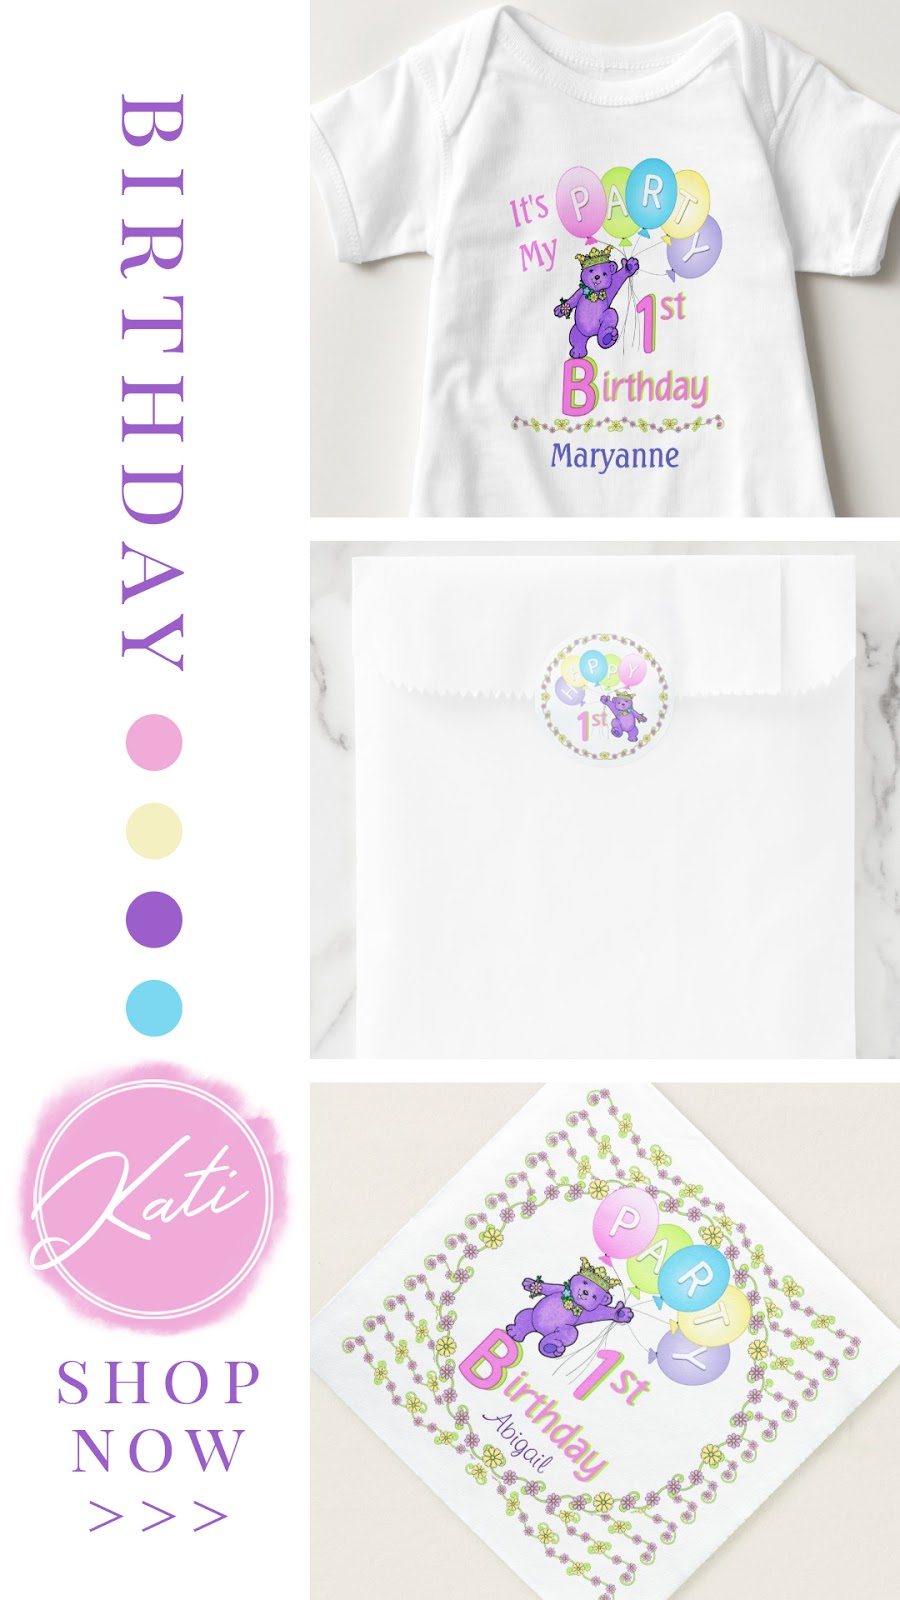 Purple bear and balloons first birthday party collection. Featuring personalized apparel, stickers, favors, gifts, and party decor. In a confetti pink, sweetness yellow, cotton candy blue, and playful purple color palette.